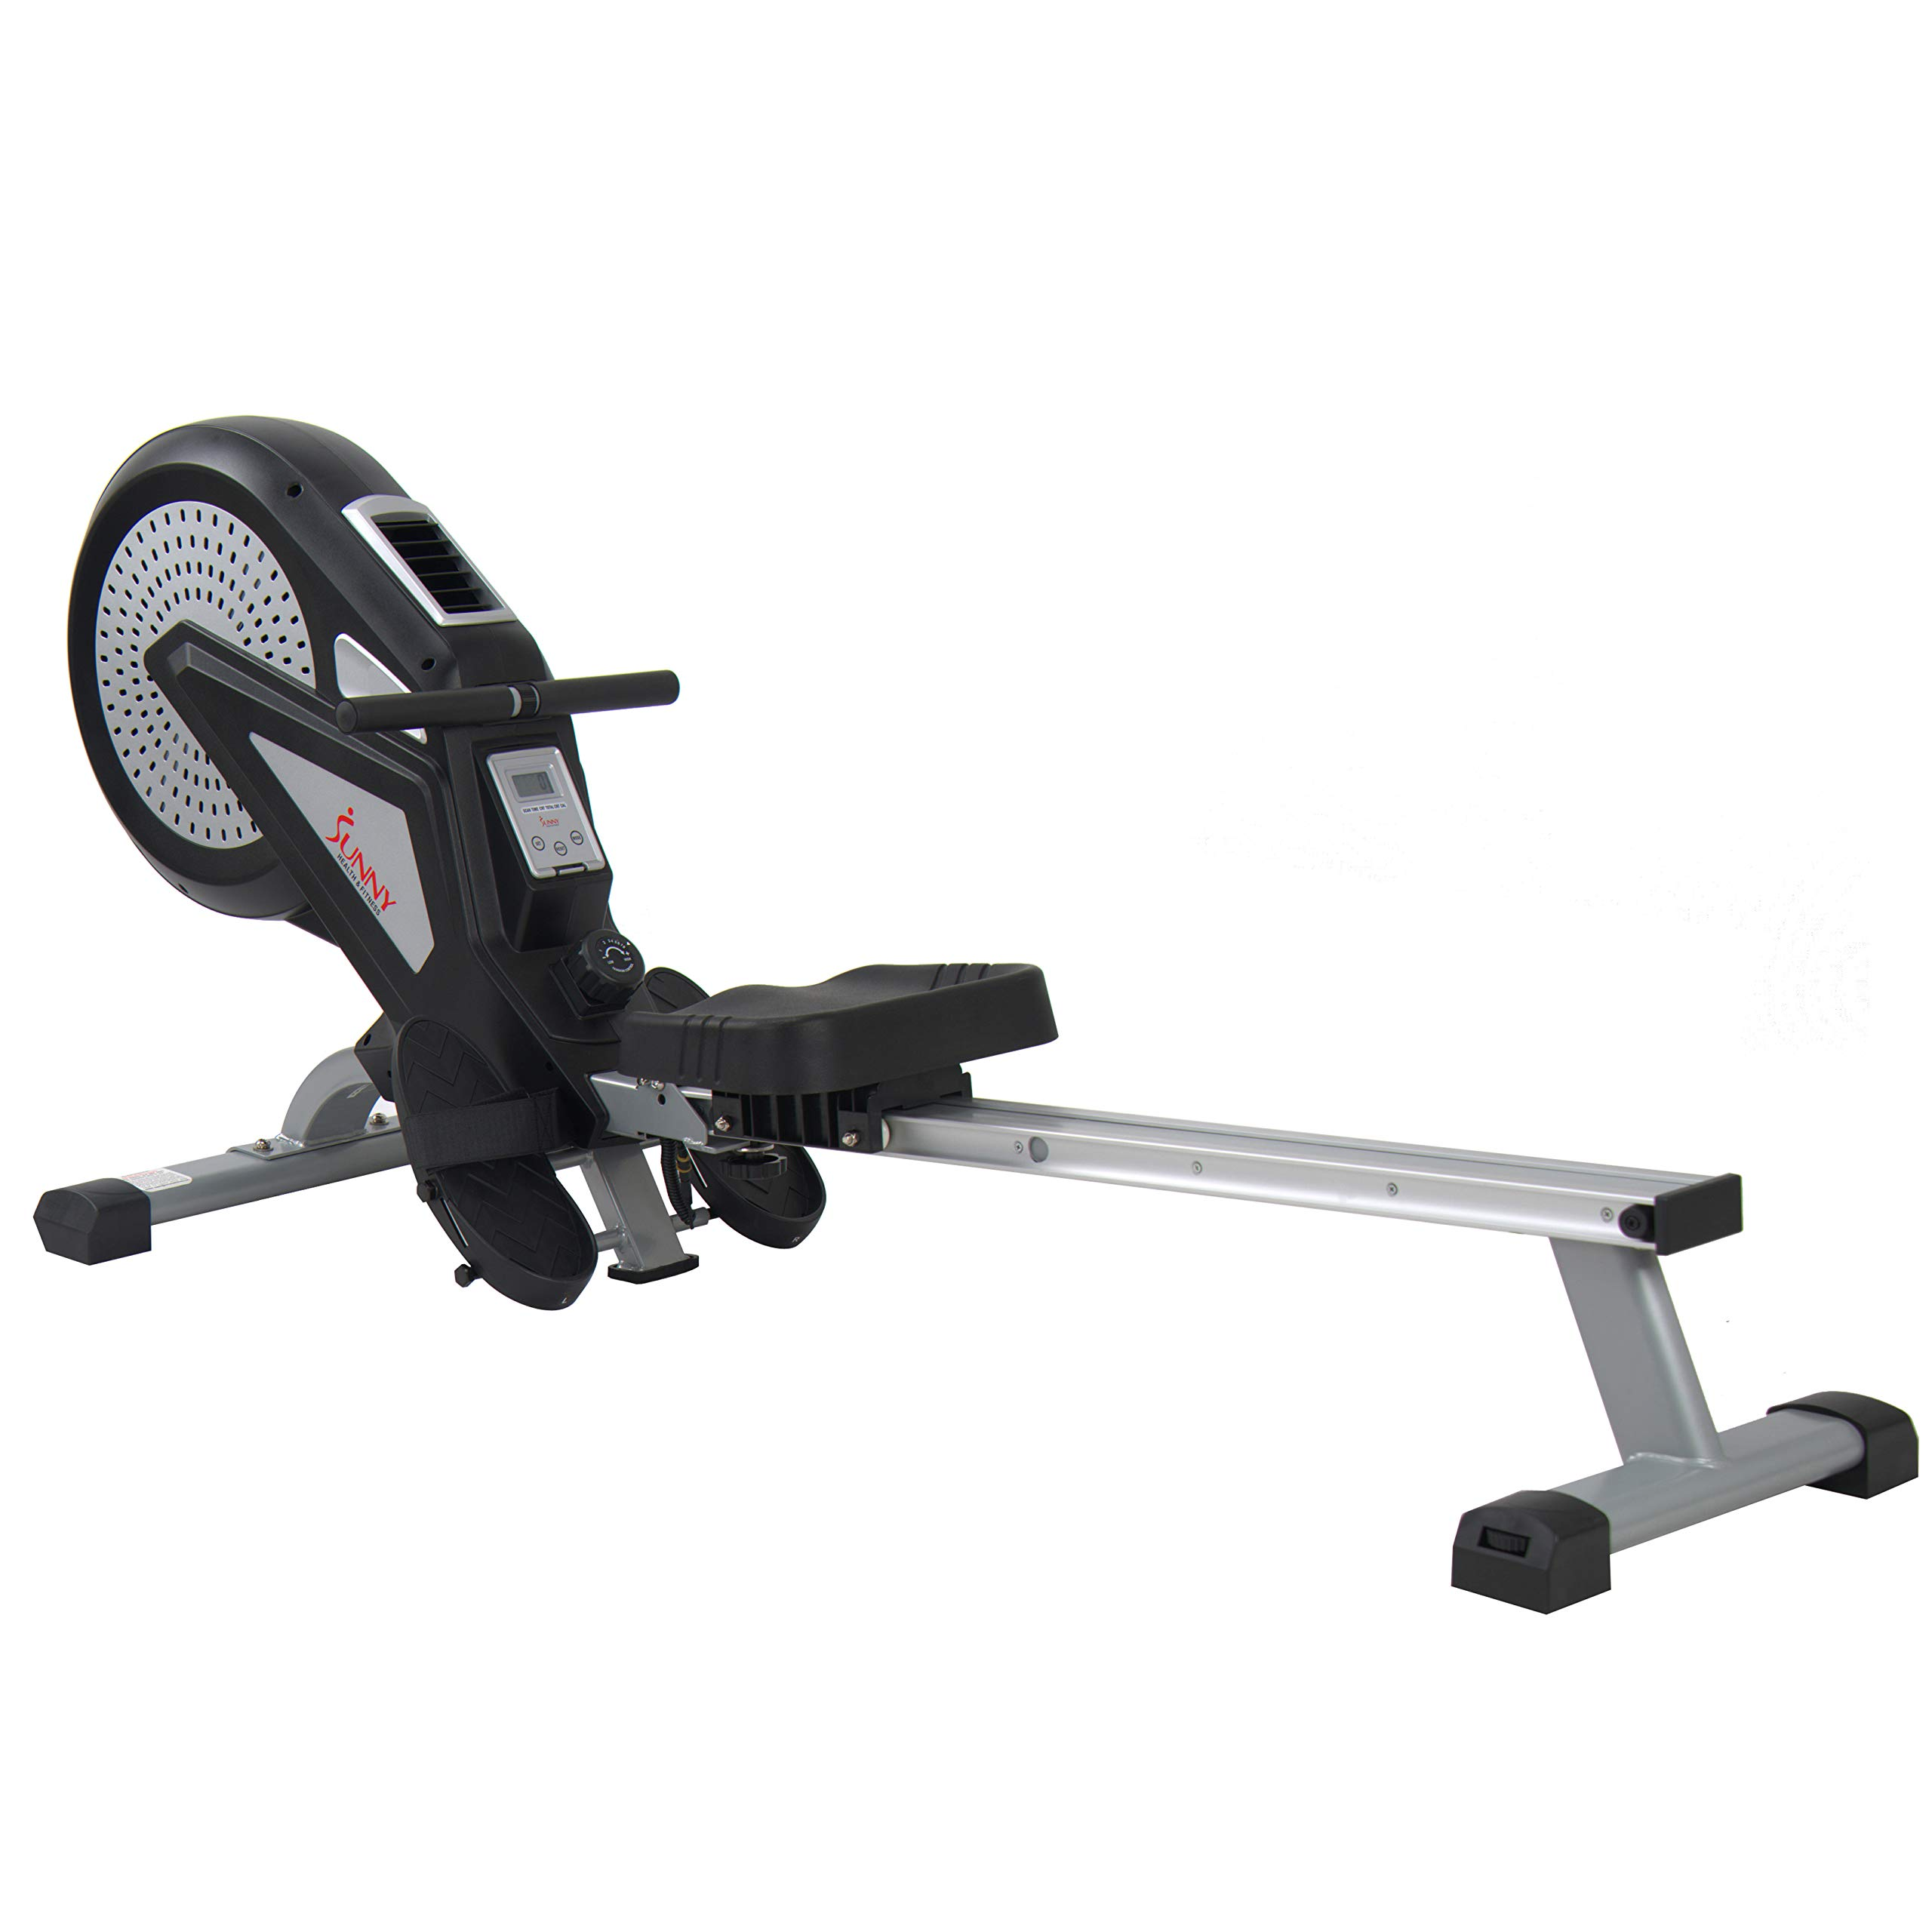 Sunny Health & Fitness Air Rower Rowing Machine w/ LCD Monitor, Dual Belt and Air Resistance SF-RW5623 by Sunny Health & Fitness (Image #2)